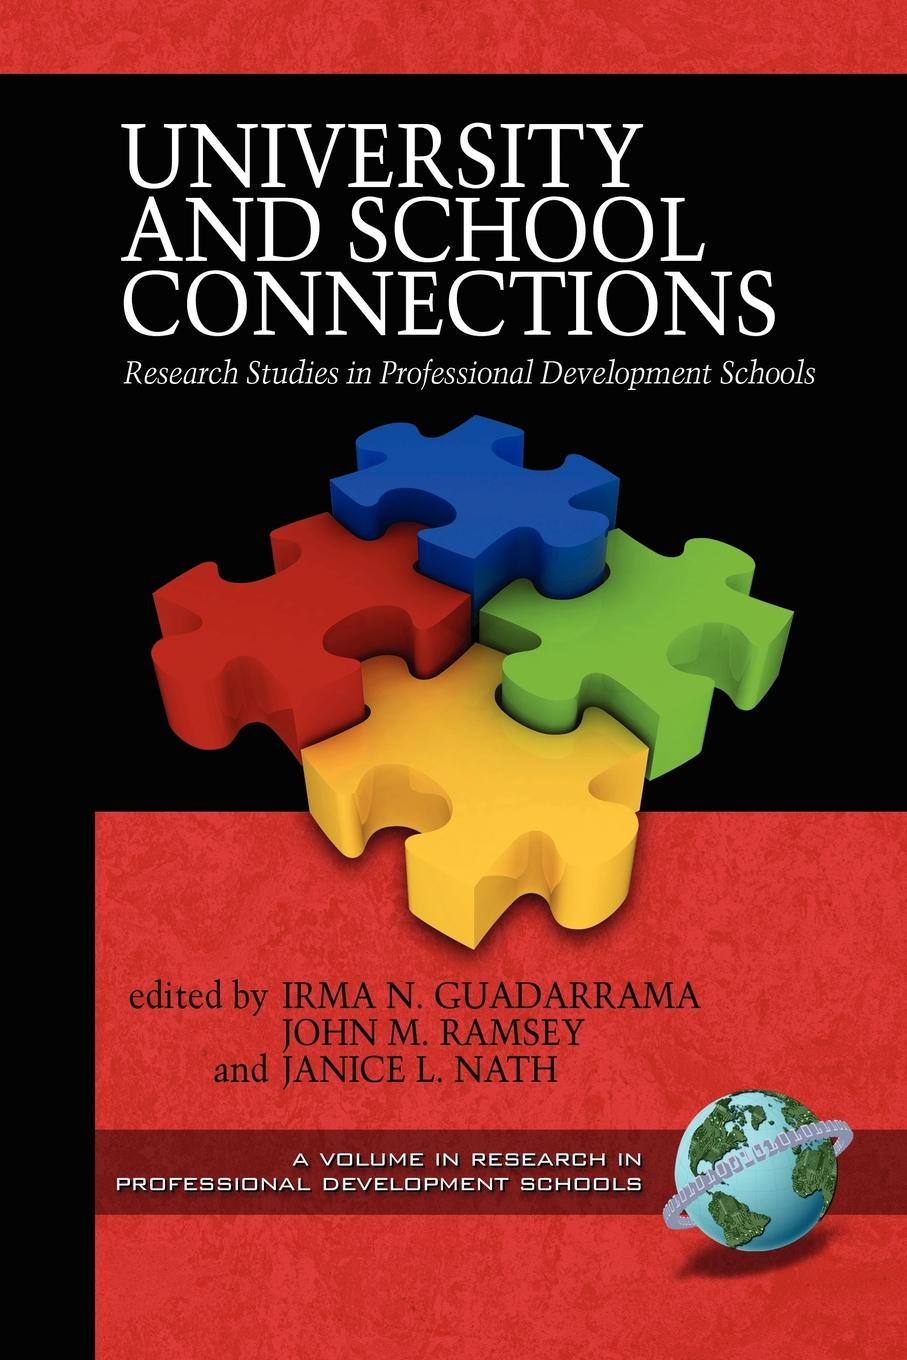 University and School Connections. Research Studies in Professional Development Schools (PB) the value of continuing professional development